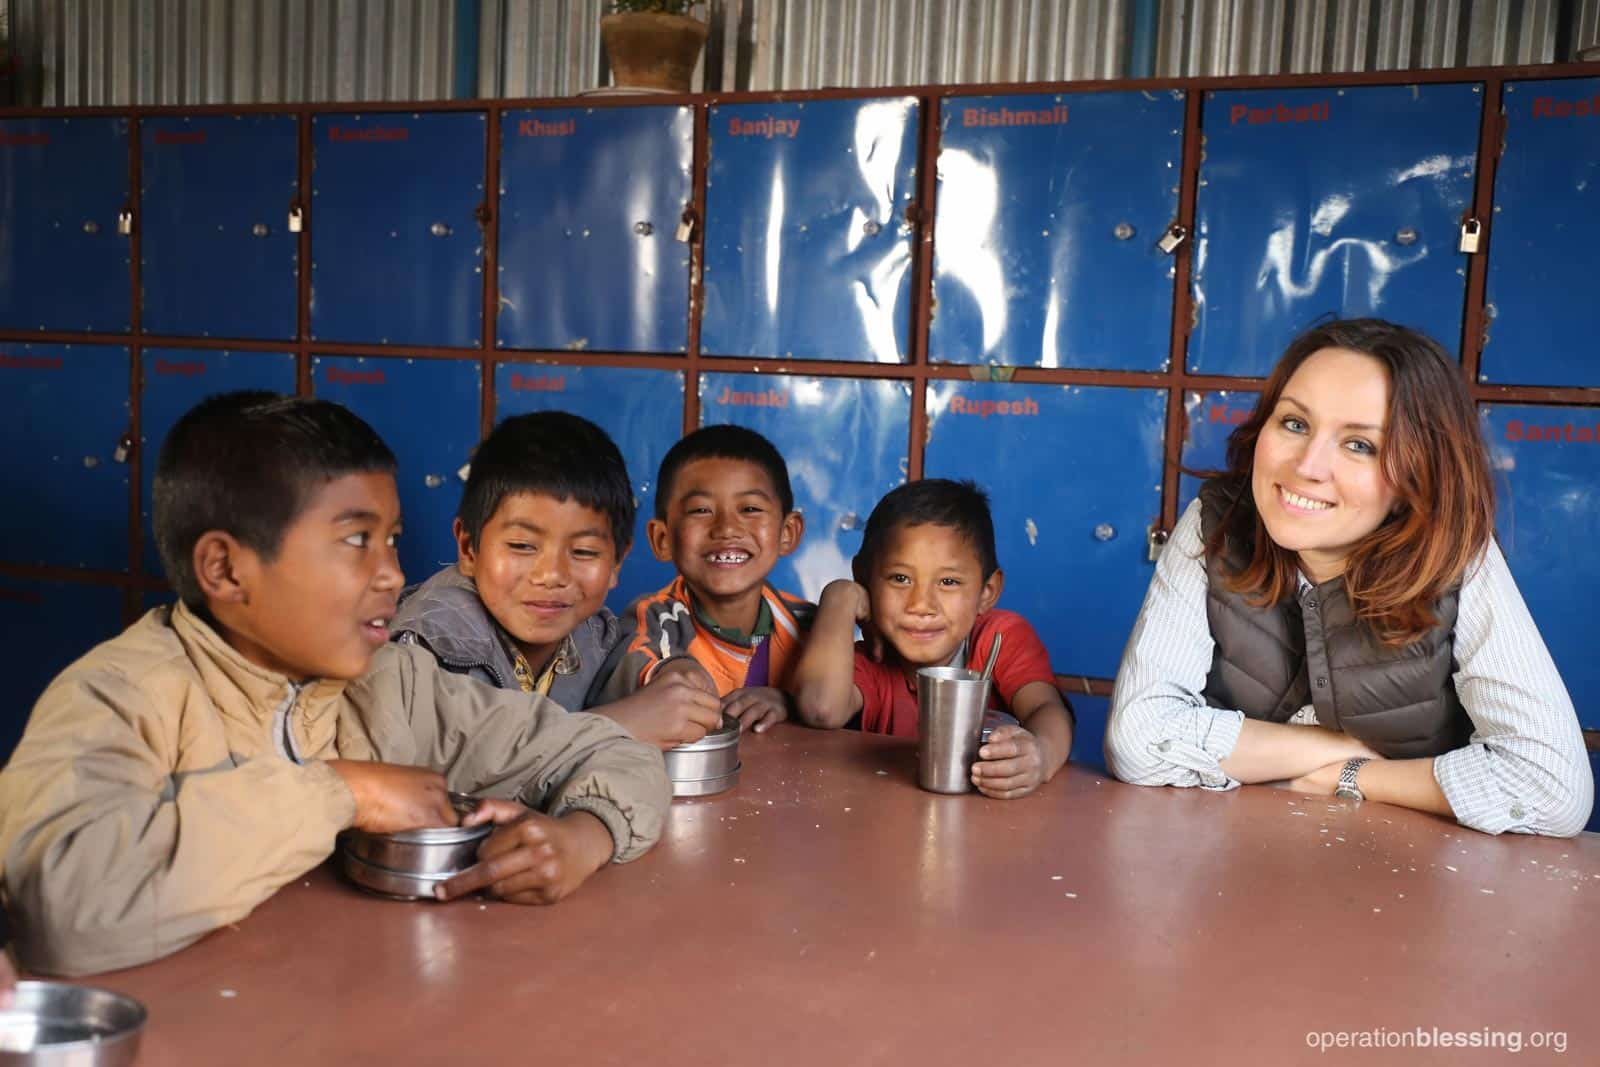 Monica Eriksen, Operation Blessing's livelihood program manager, visits with a group of Nepalese school children.